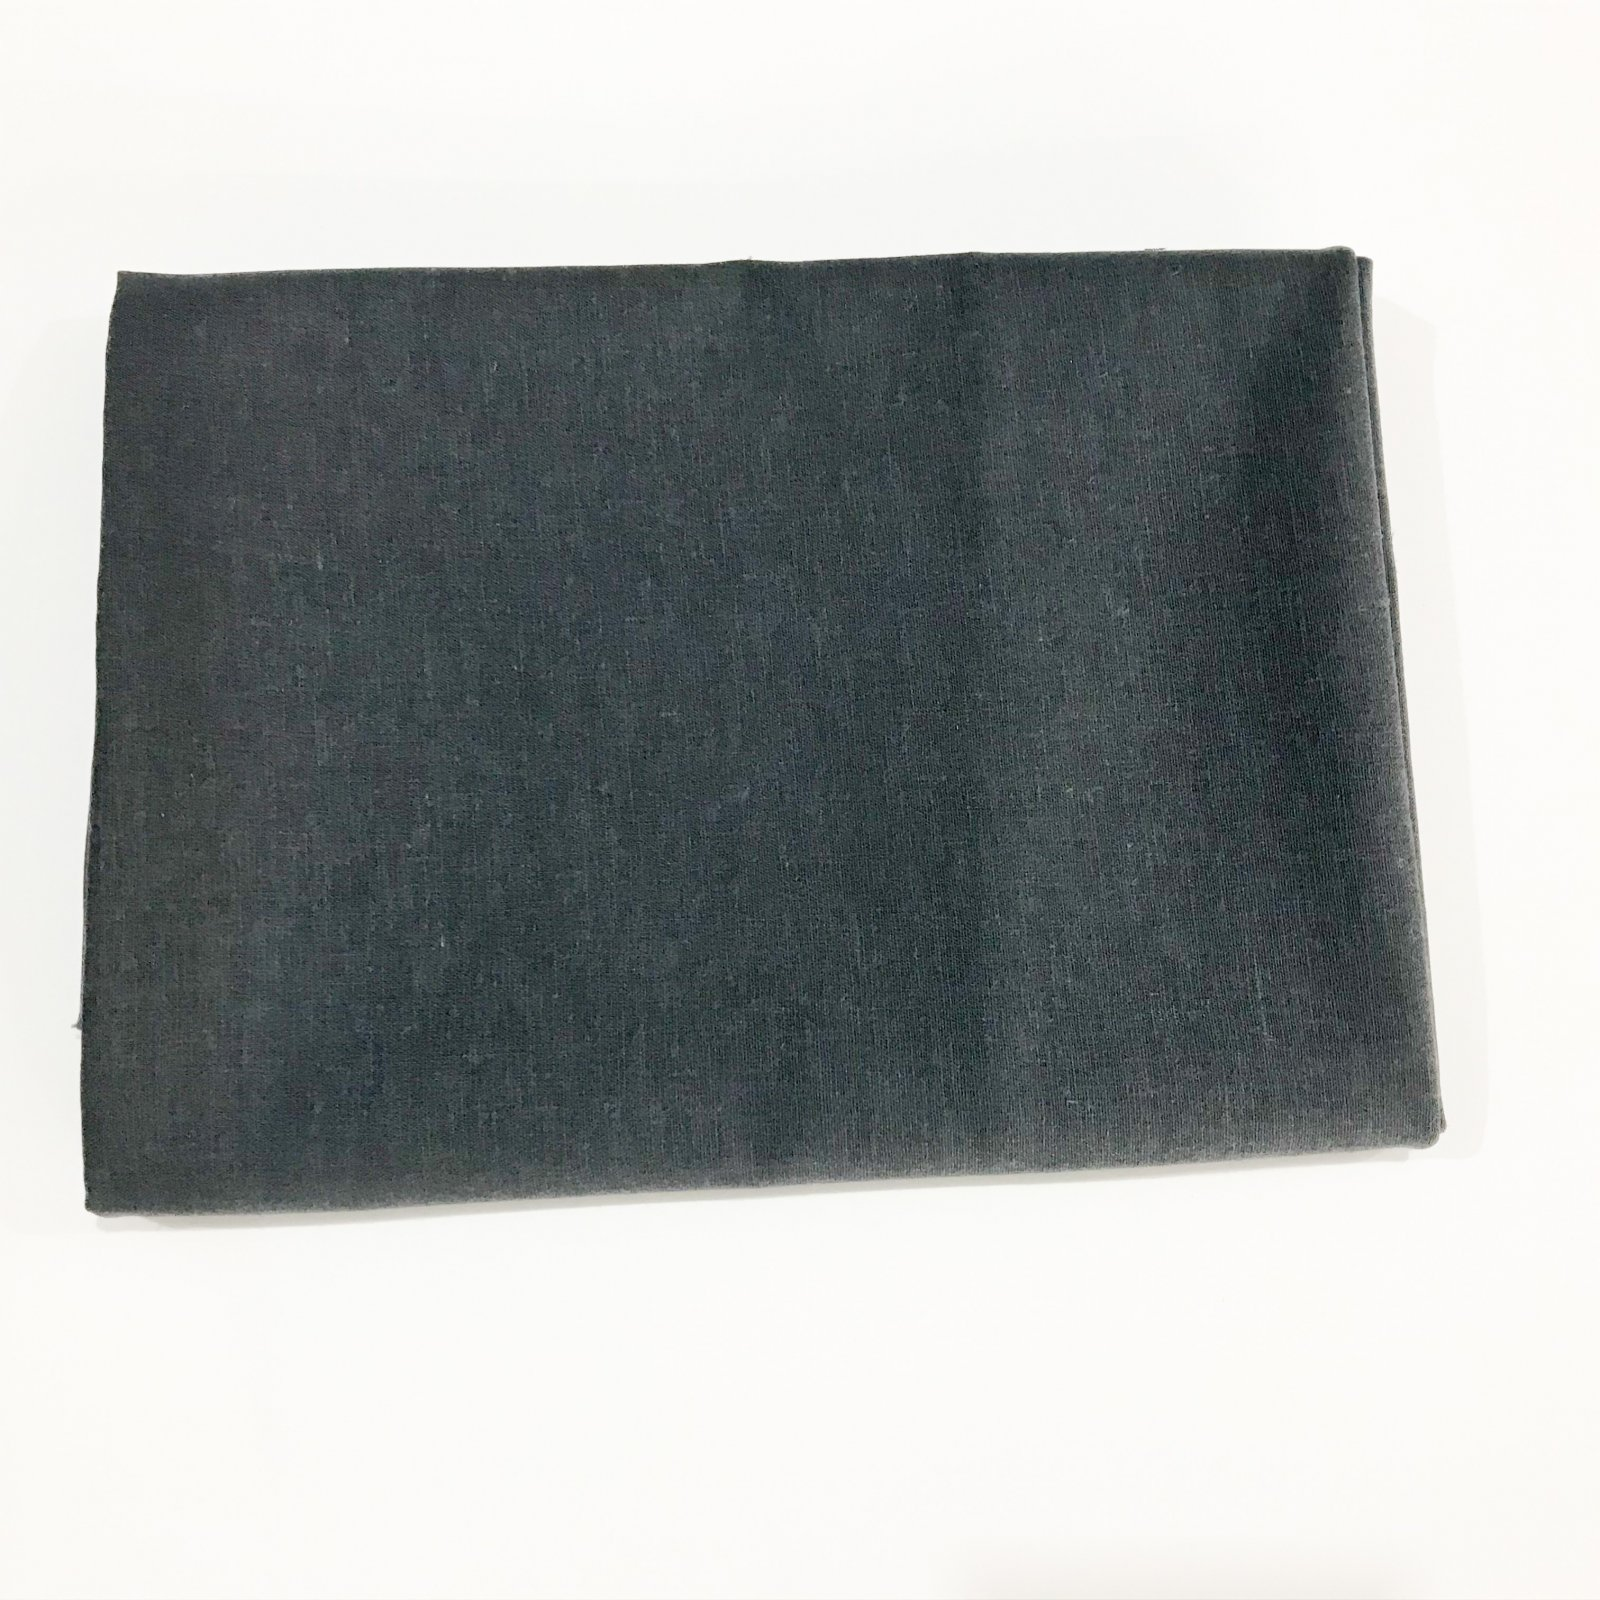 1 yard + 34 inches - Roma Stretch Linen - Charcoal